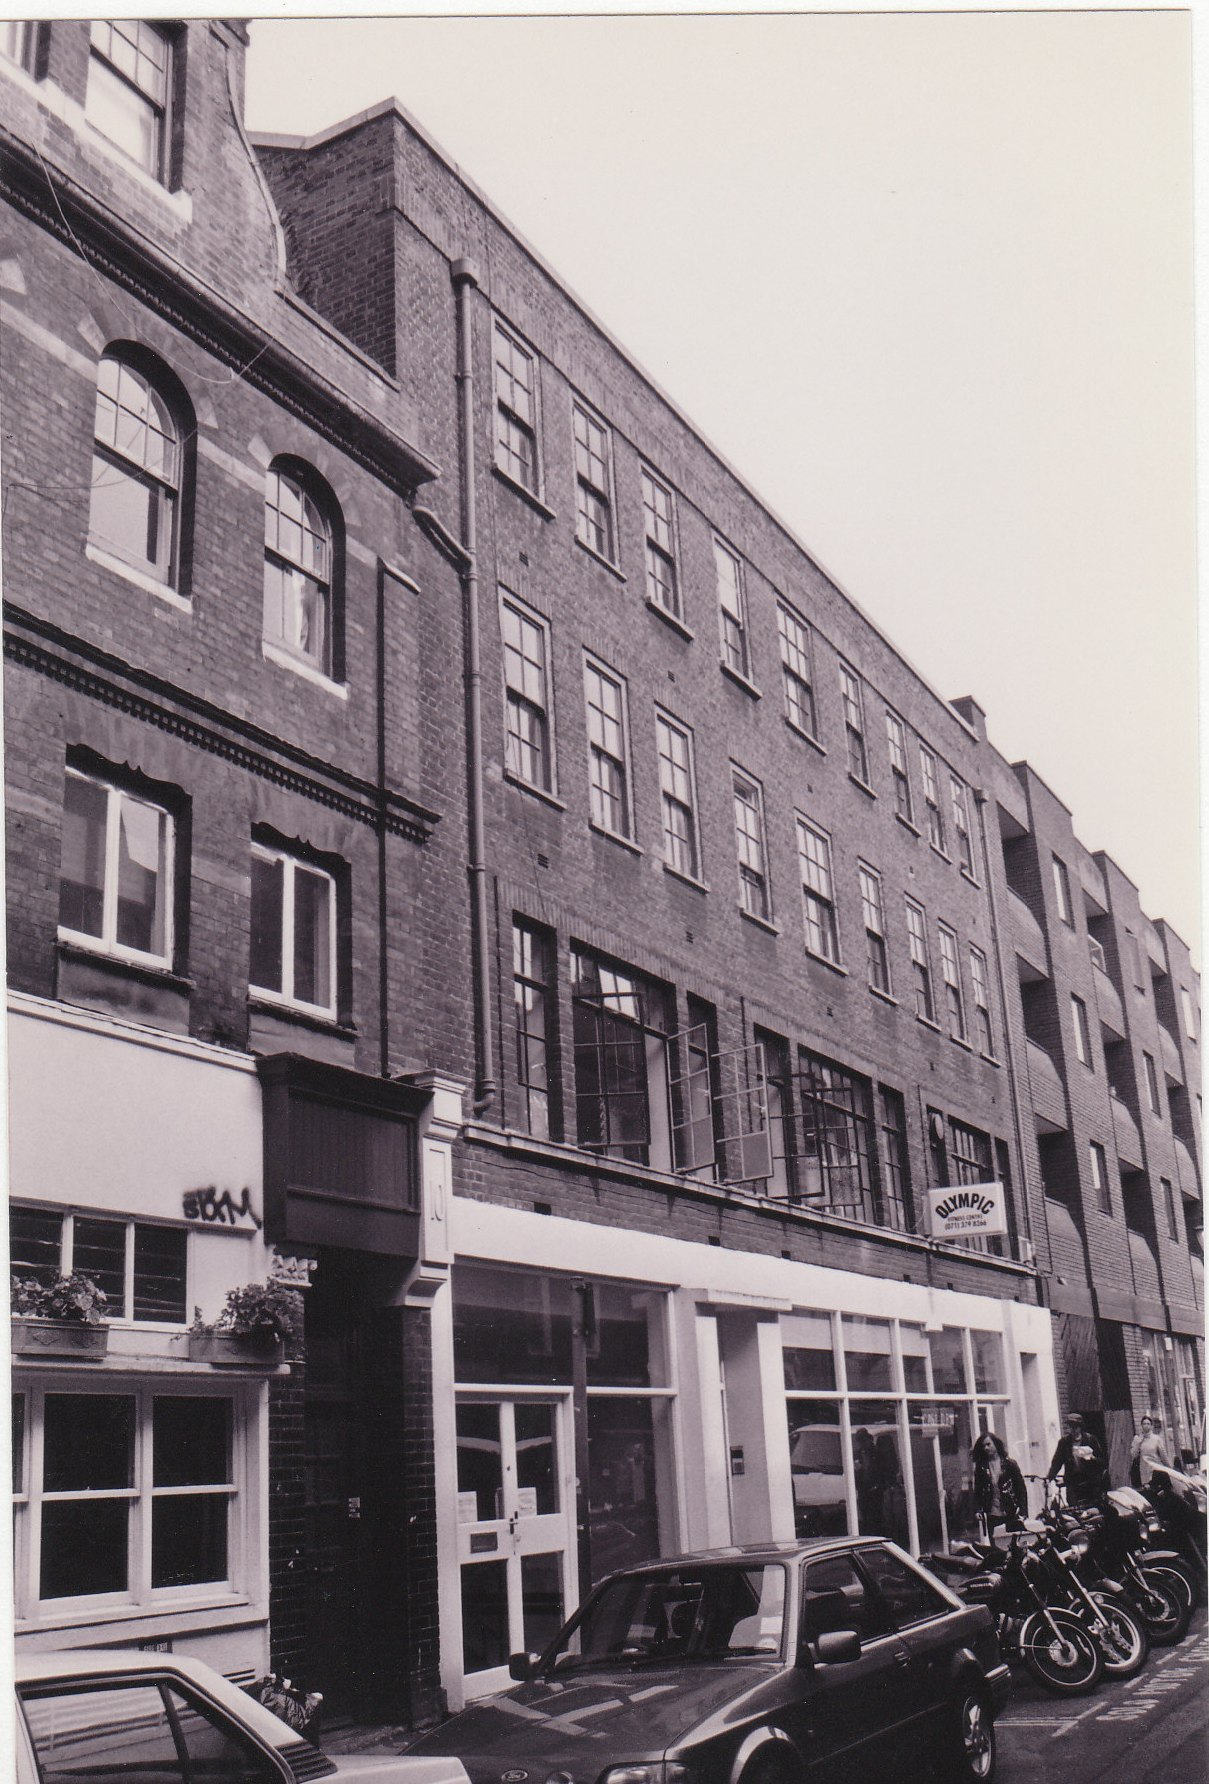 7-9 Earlham Street before restoration.